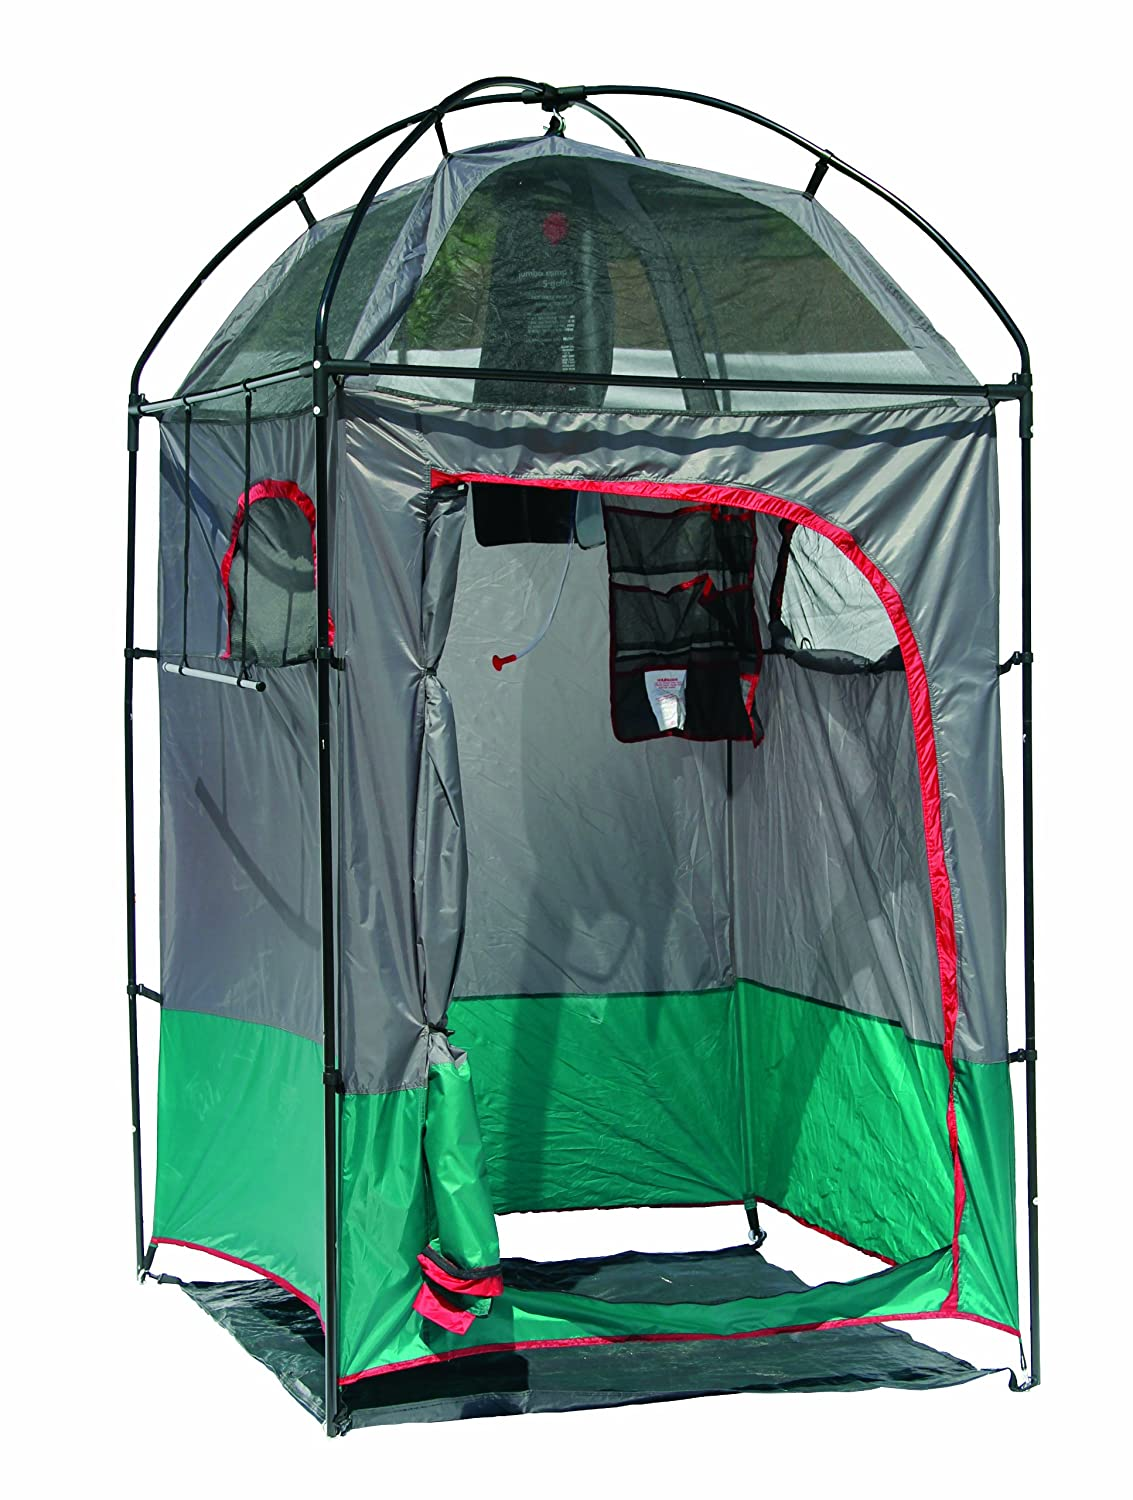 Top 10 Best Camping Privacy Shower Tents Reviews 2016-2017 ...